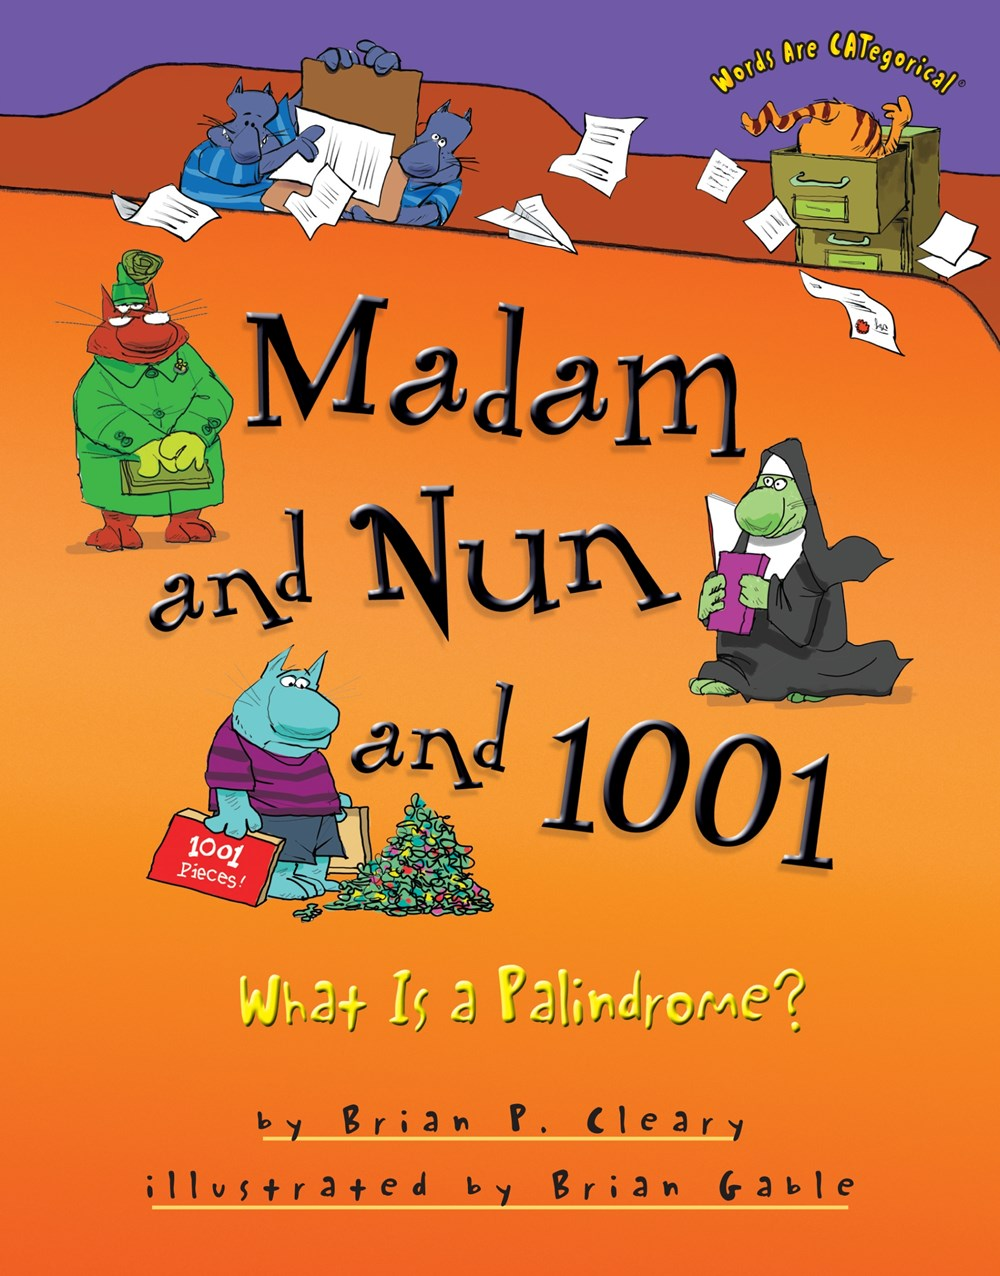 Madam and Nun and 1001